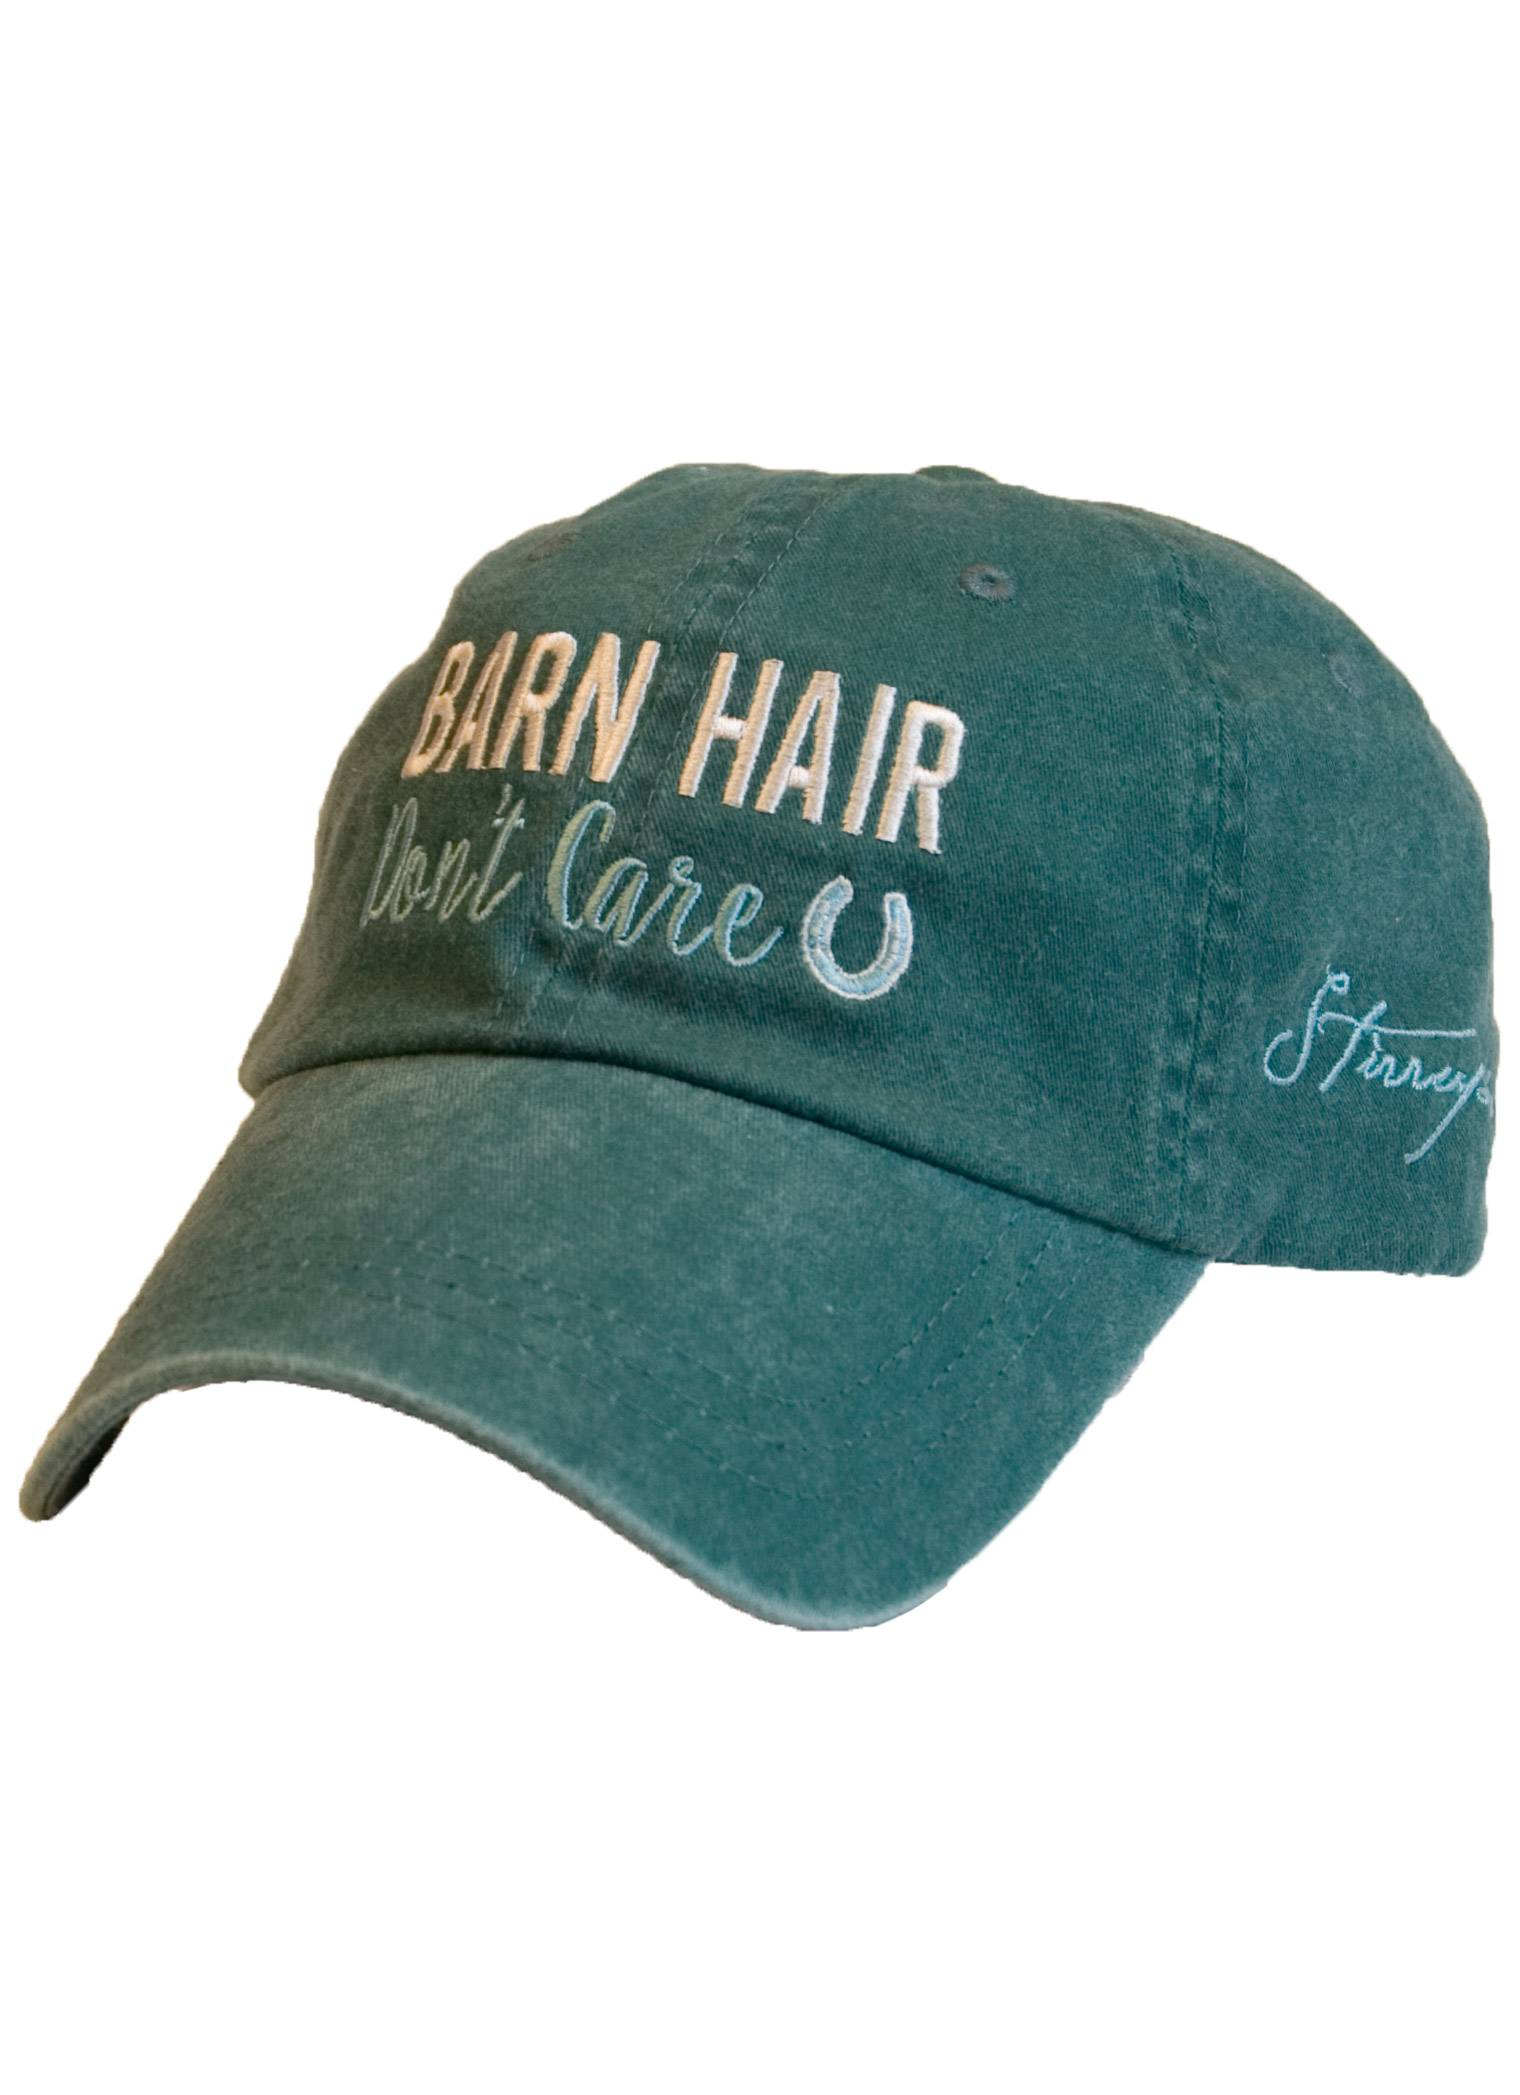 Stirrups Ladies Barn Hair -Dont Care Garment Washed Adj. Cap